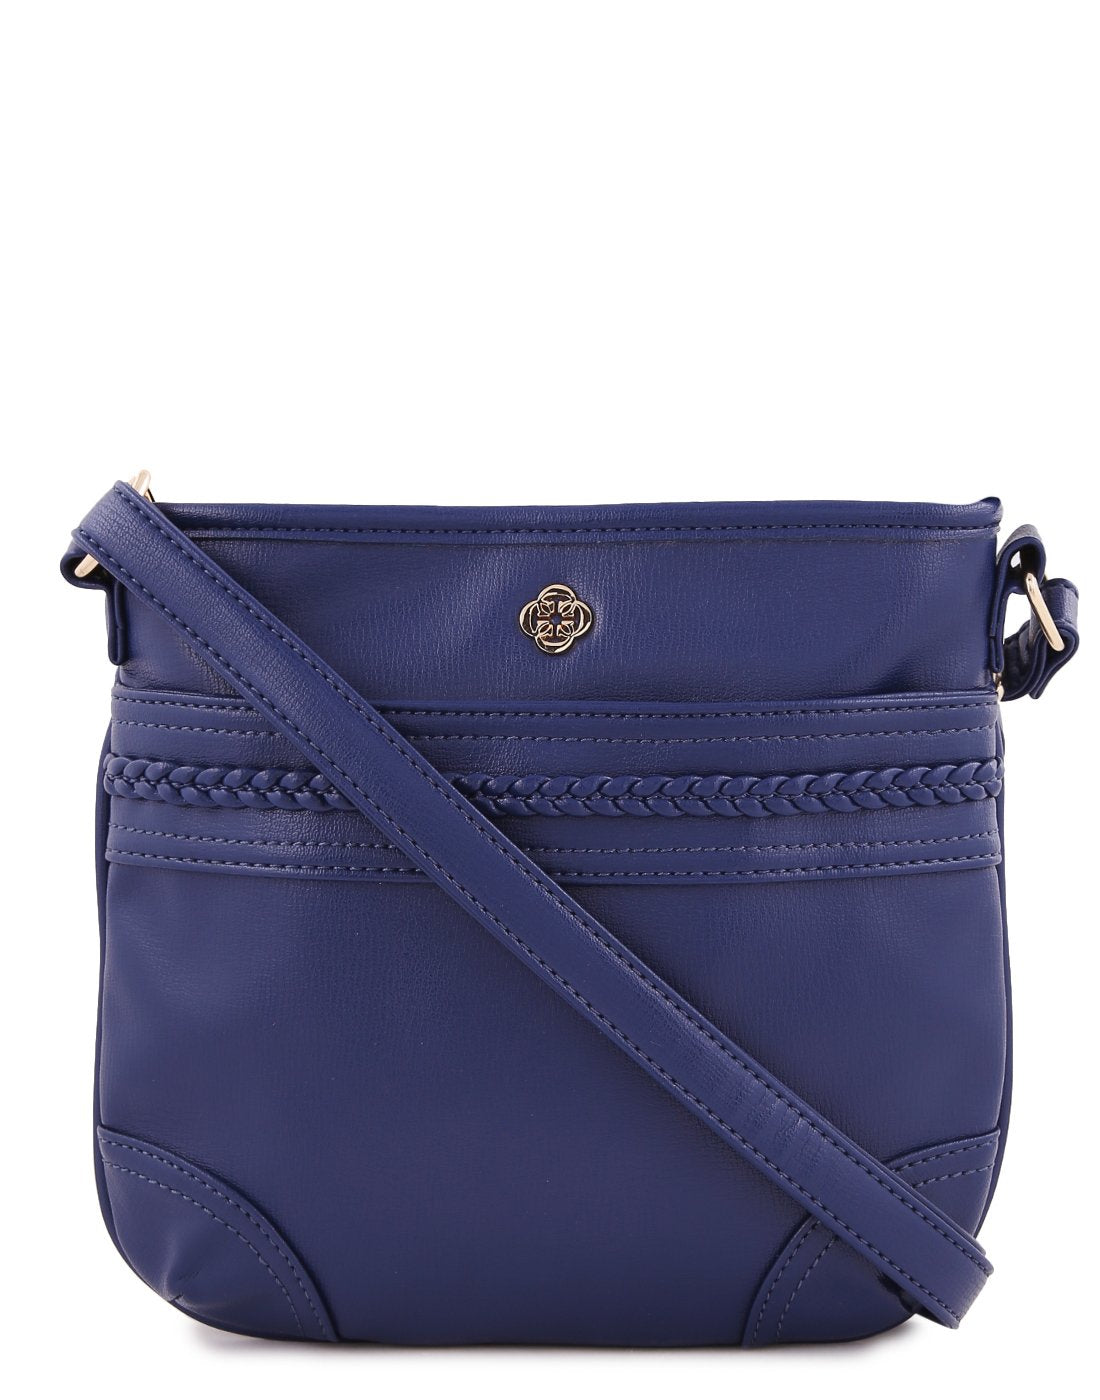 Ziva Slim Sling Bag